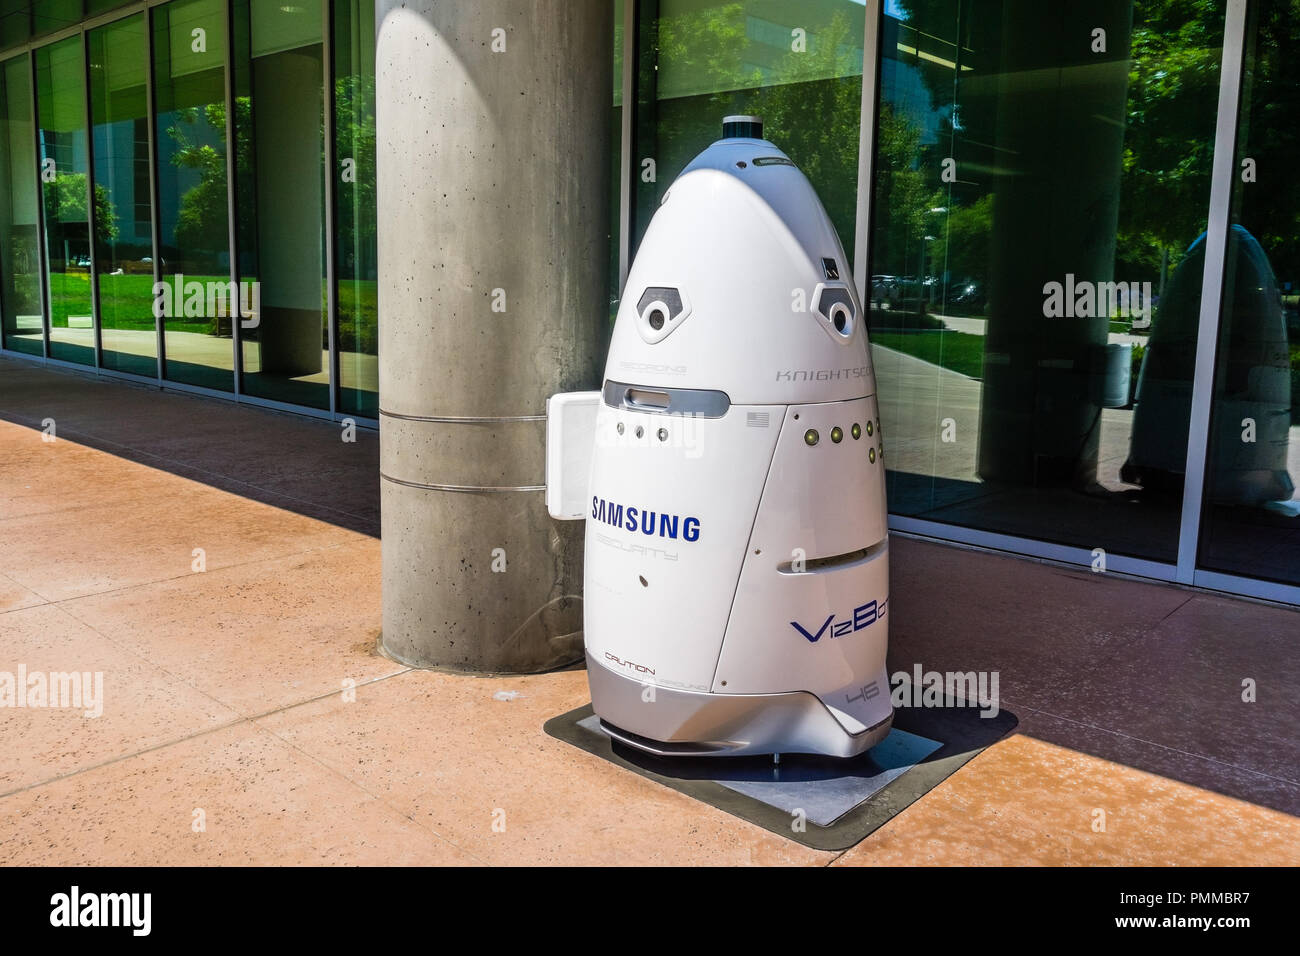 August 9, 2018 Mountain View / CA / USA - Knightscope security robot branded with the Samsung logo docked outside a building; Silicon Valley - Stock Image